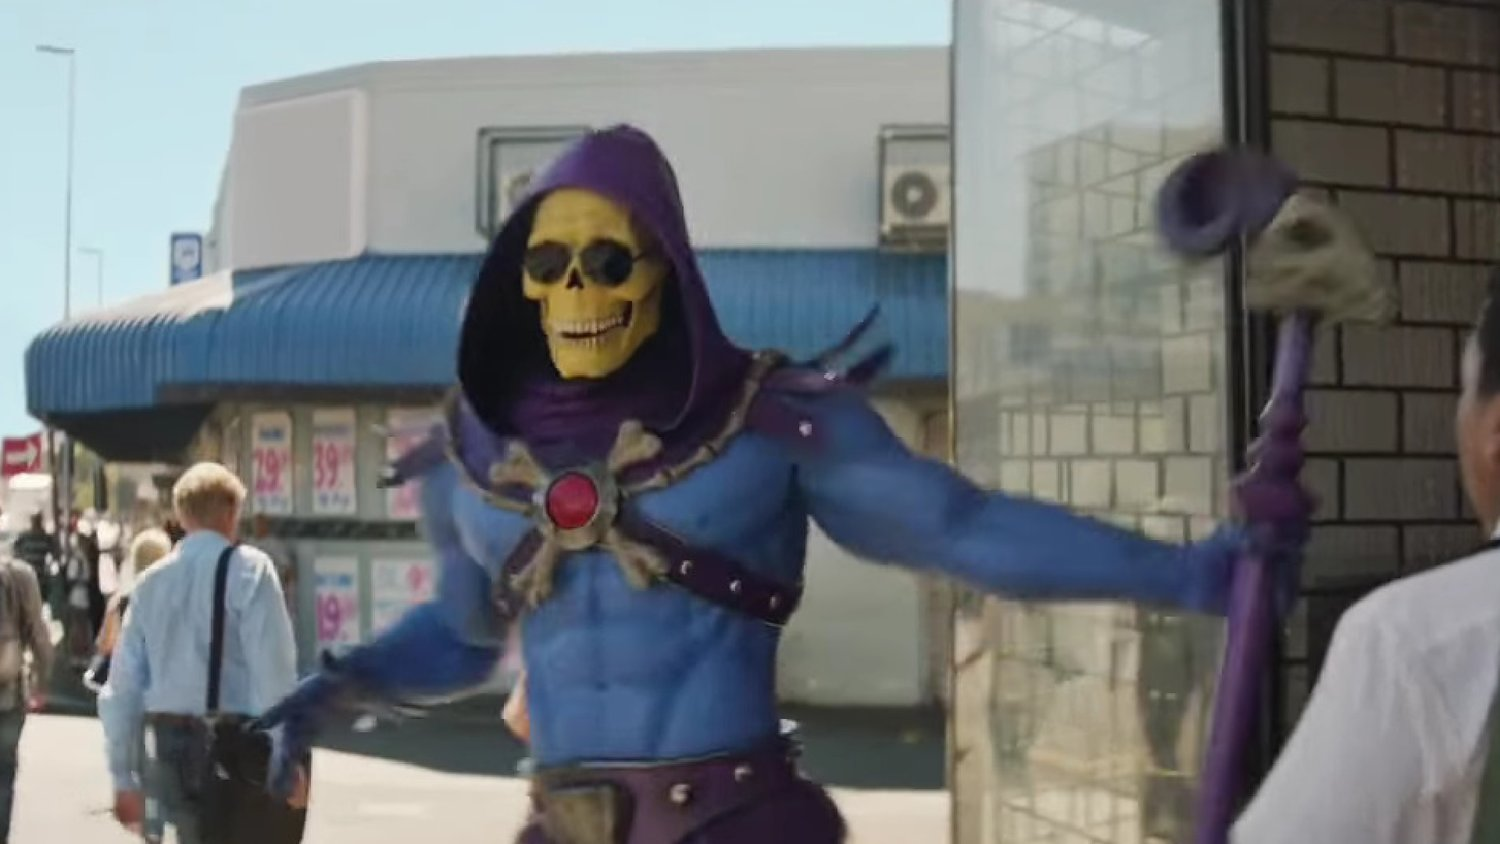 This Sexy Skeletor Commercial Is the Best Thing I've Seen in Awhile